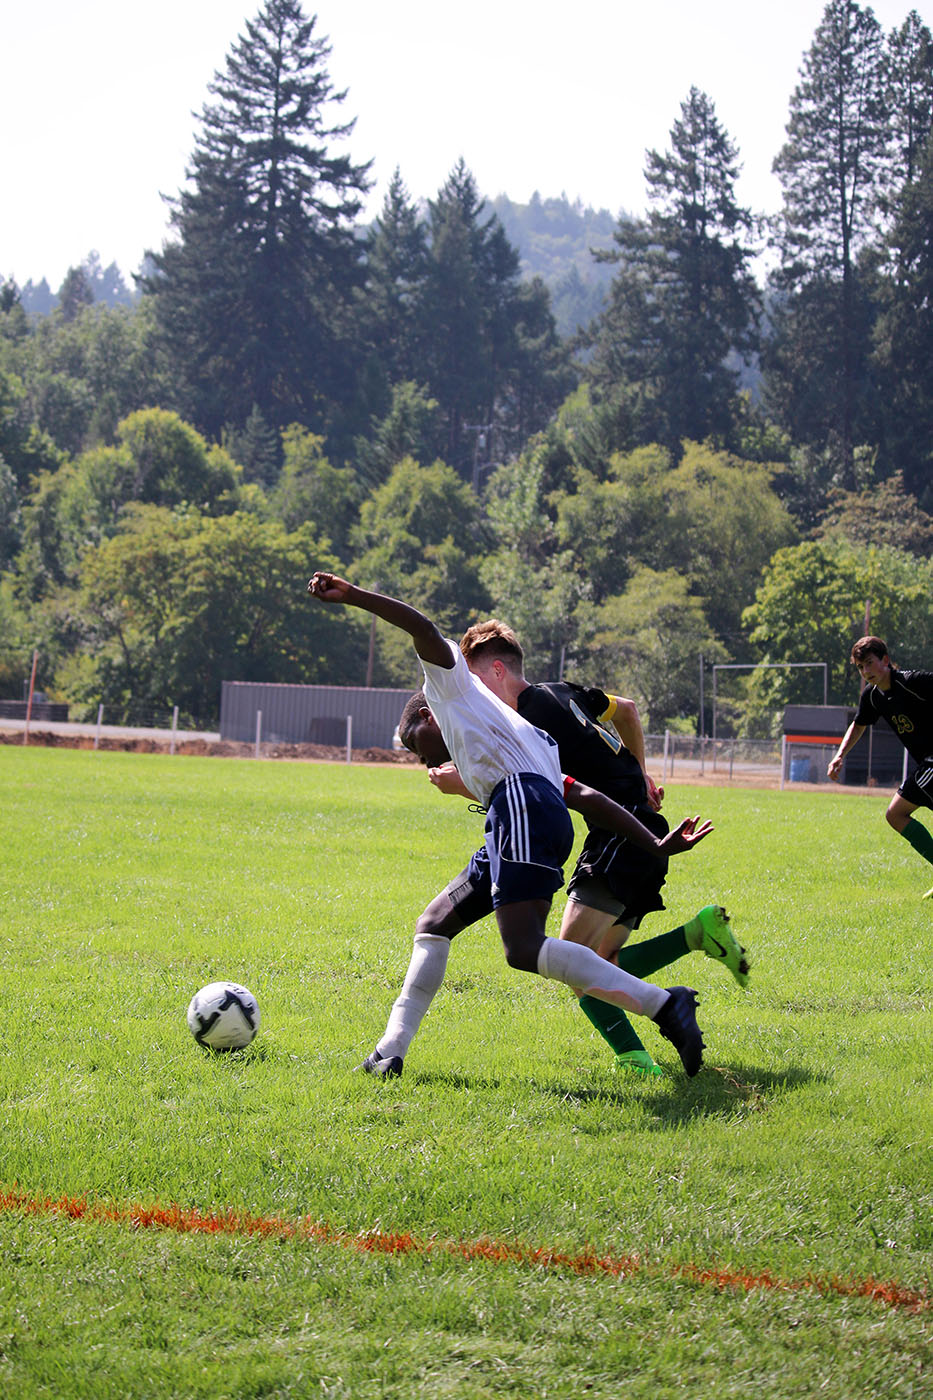 Boys Soccer at Best Christian Academy